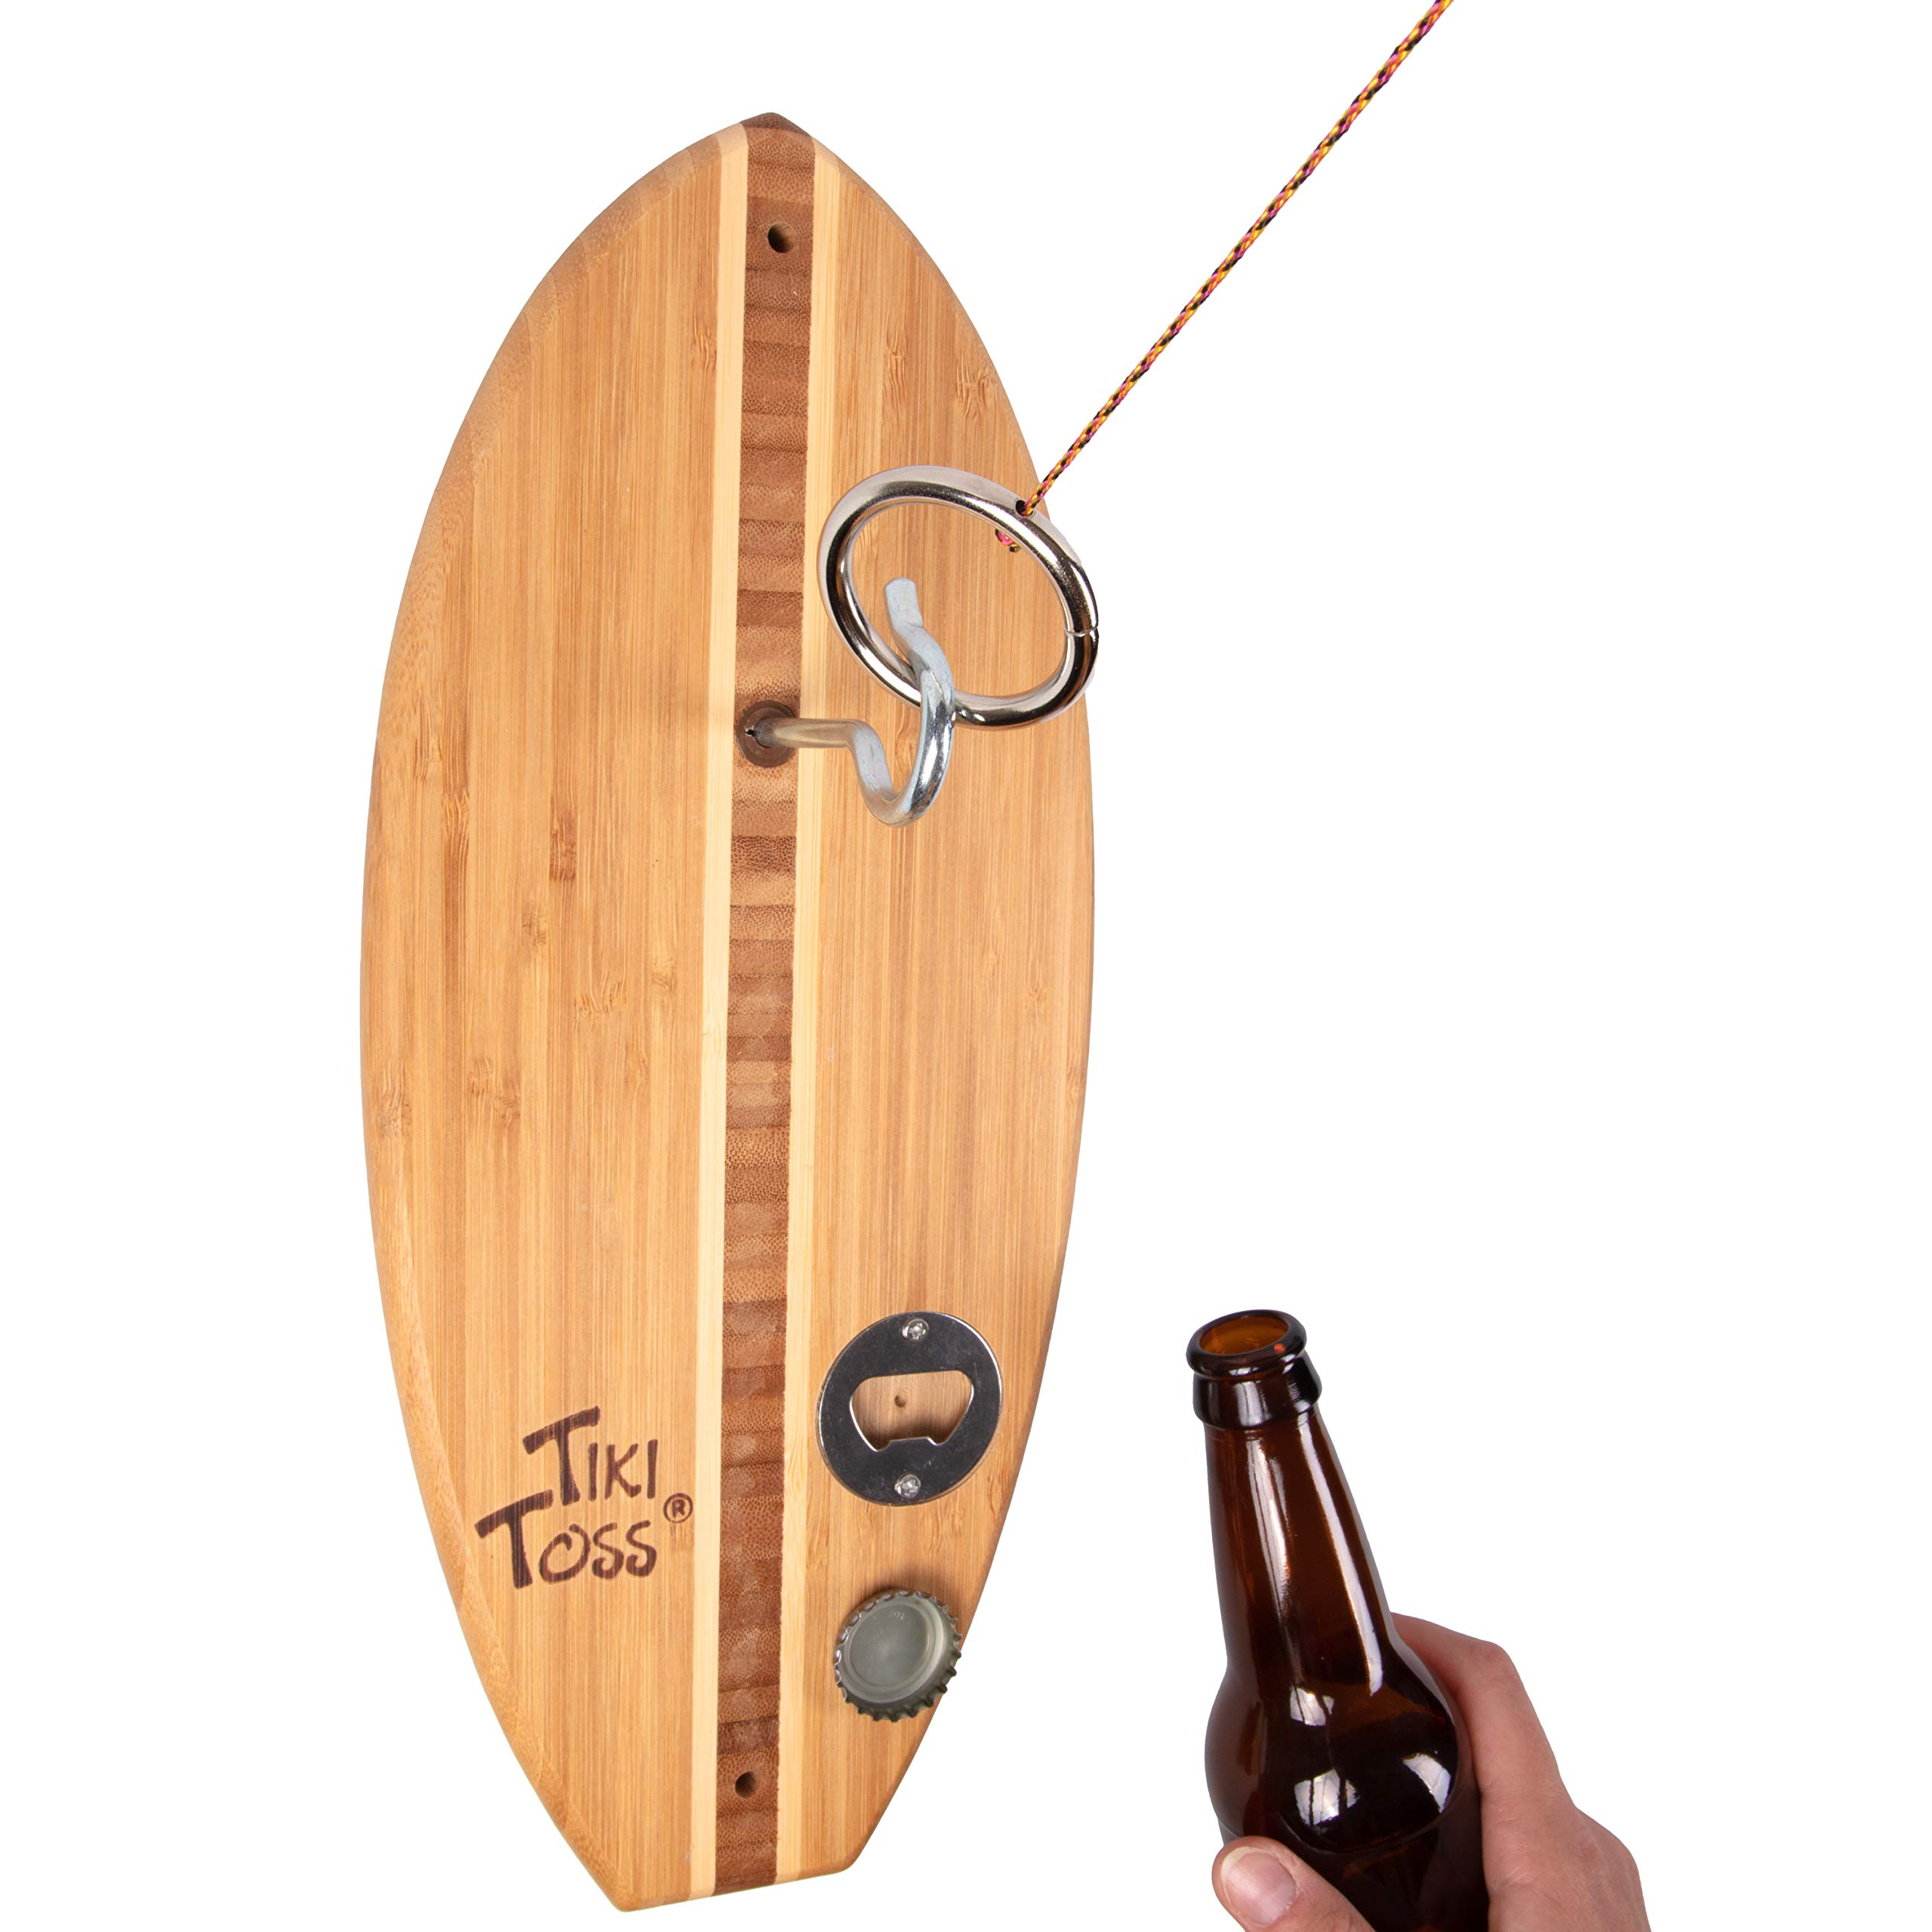 Tiki Toss Bottle Opener Edition with Magnet Cap Catch - Crack Open A Cold One and Get Hooked - 100% Bamboo Hook and Ring Toss Party Game (All Parts Included) by Tiki Toss